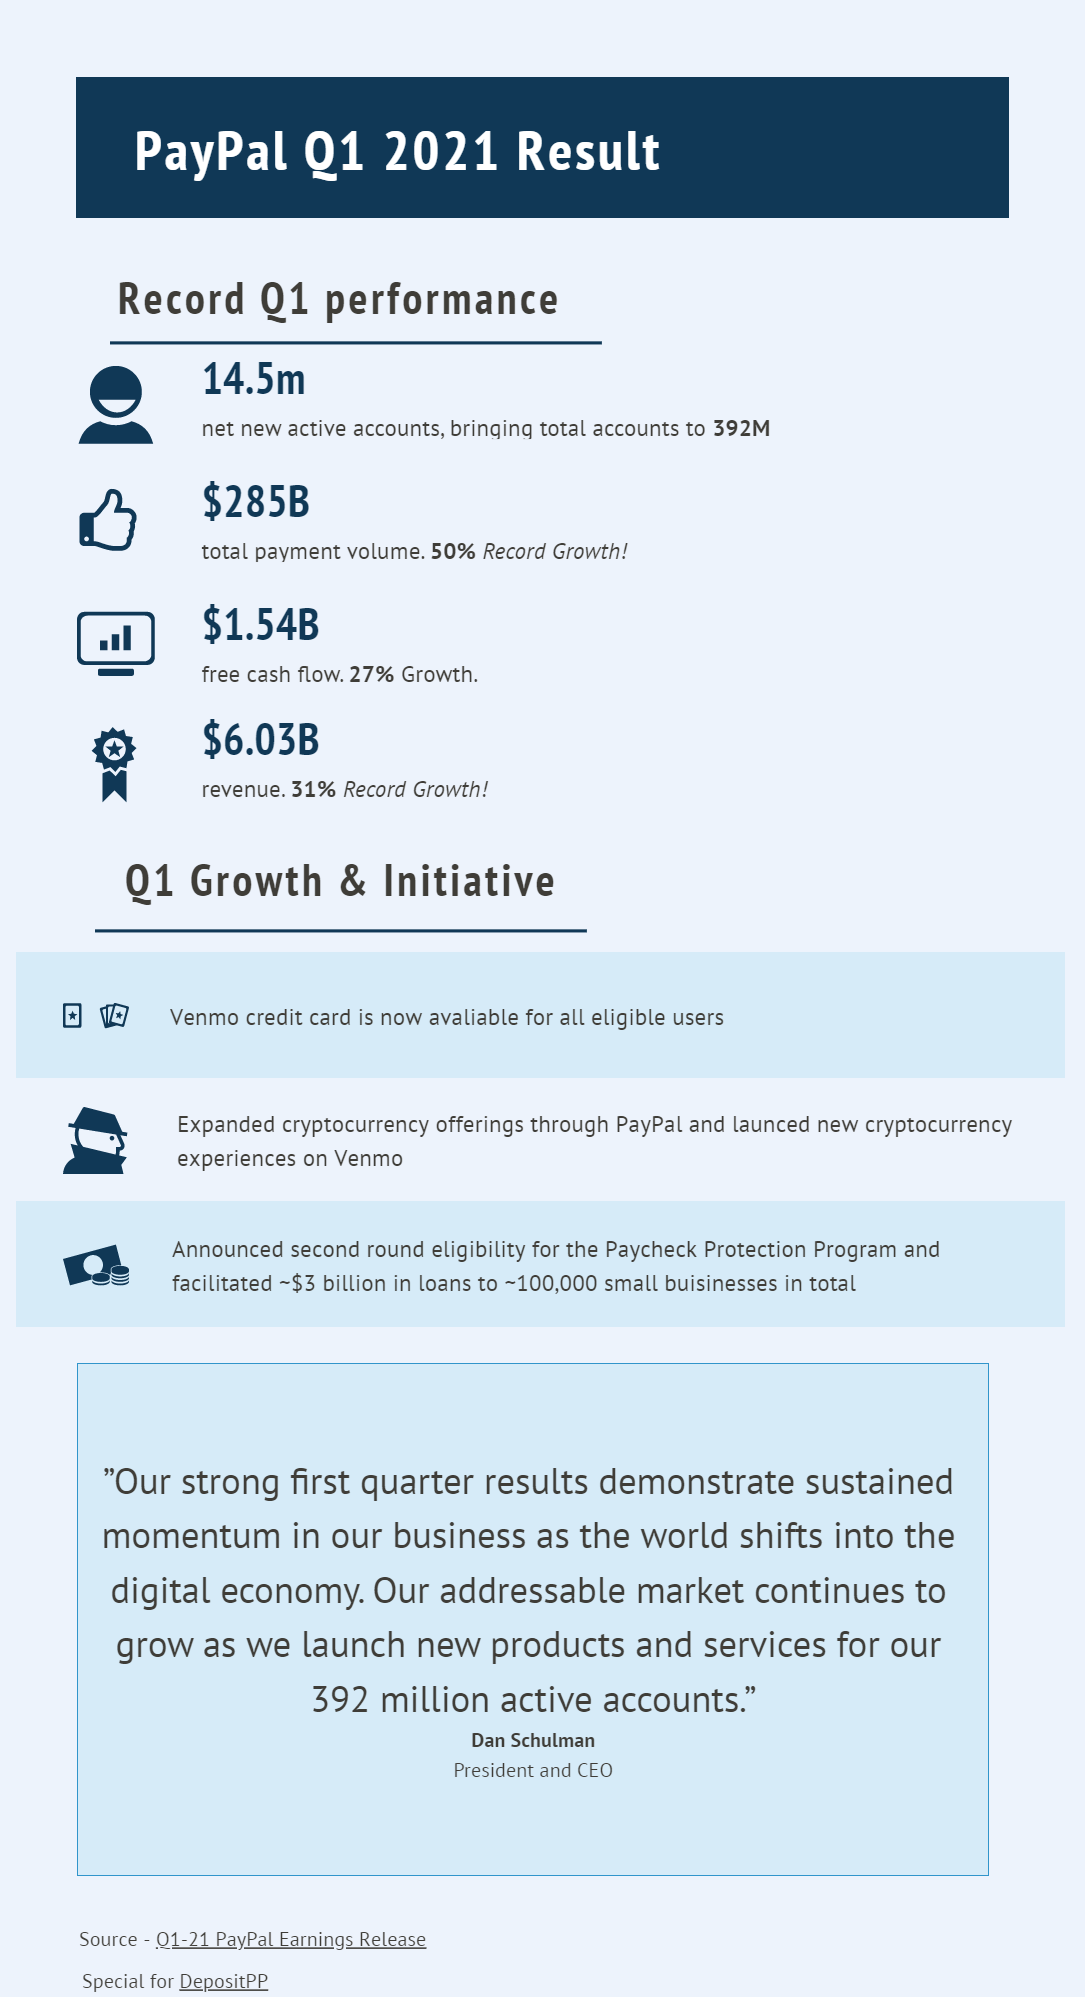 """PayPal Q1 2021 Result Record Q1 performance Chart 14.5m net new active accounts, bringing total accounts to 392M $285B total payment volume. 50% Record Growth! $1.54B free cash flow. 27% Growth. $6.03B revenue. 31% Record Growth! Q1 Growth & Initiative Venmo credit card is now avaliable for all eligible users Expanded cryptocurrency offerings through PayPal and launced new cryptocurrency experiences on Venmo Announced second round eligibility for the Paycheck Protection Program and facilitated ~$3 billion in loans to ~100,000 small buisinesses in total """"Our strong first quarter results demonstrate sustained momentum in our business as the world shifts into the digital economy. Our addressable market continues to grow as we launch new products and services for our 392 million active accounts."""" Dan Schulman President and CEO  Source - Q1-21 PayPal Earnings Release Special for DepositPP"""